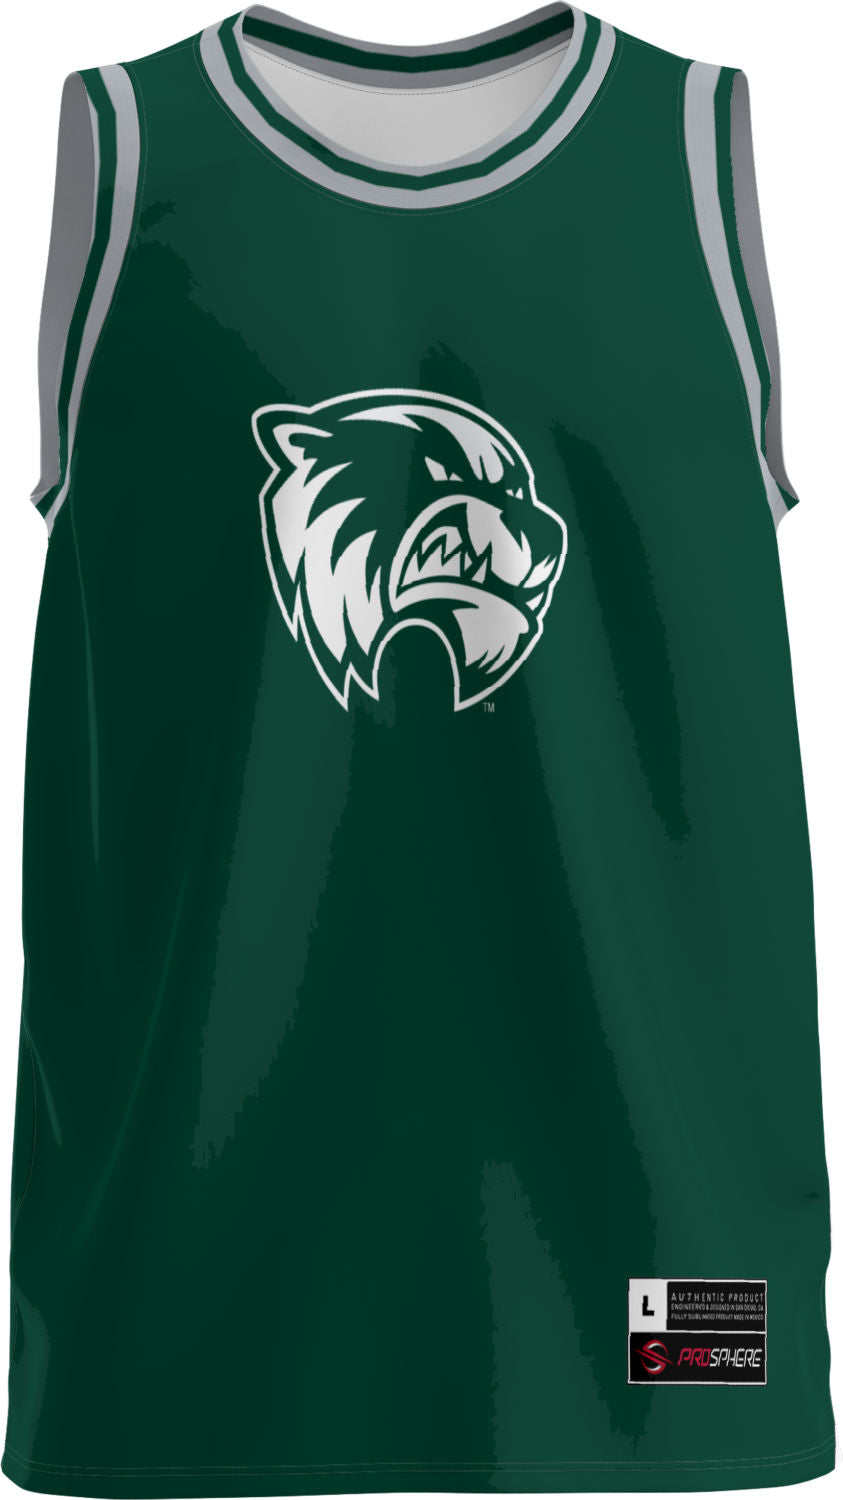 Utah Valley University Youth Replica Basketball Fan Jersey - Retro